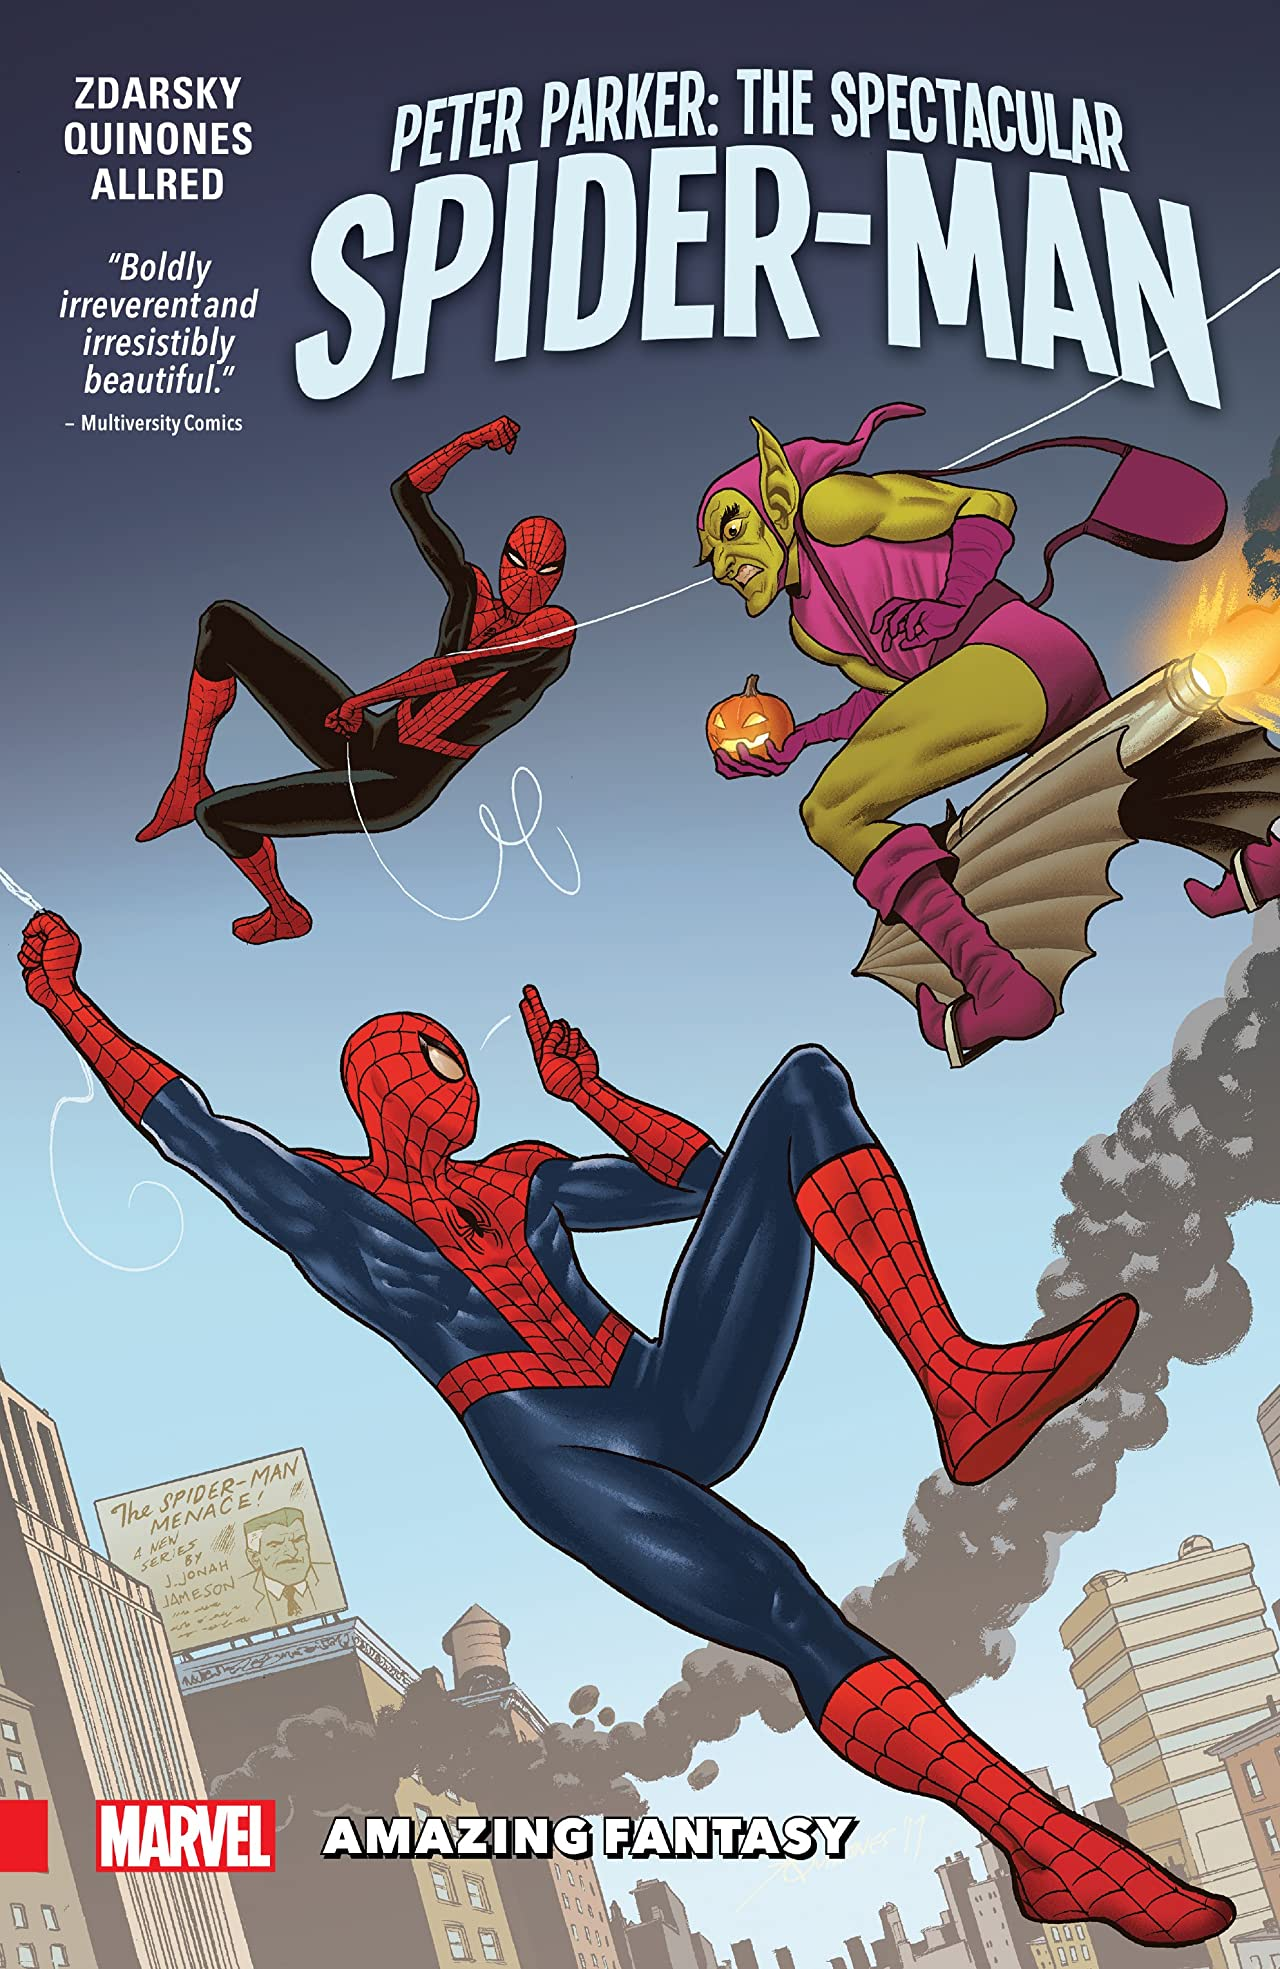 Peter Parker: The Spectacular Spider-Man Vol. 3: Amazing Fantasy